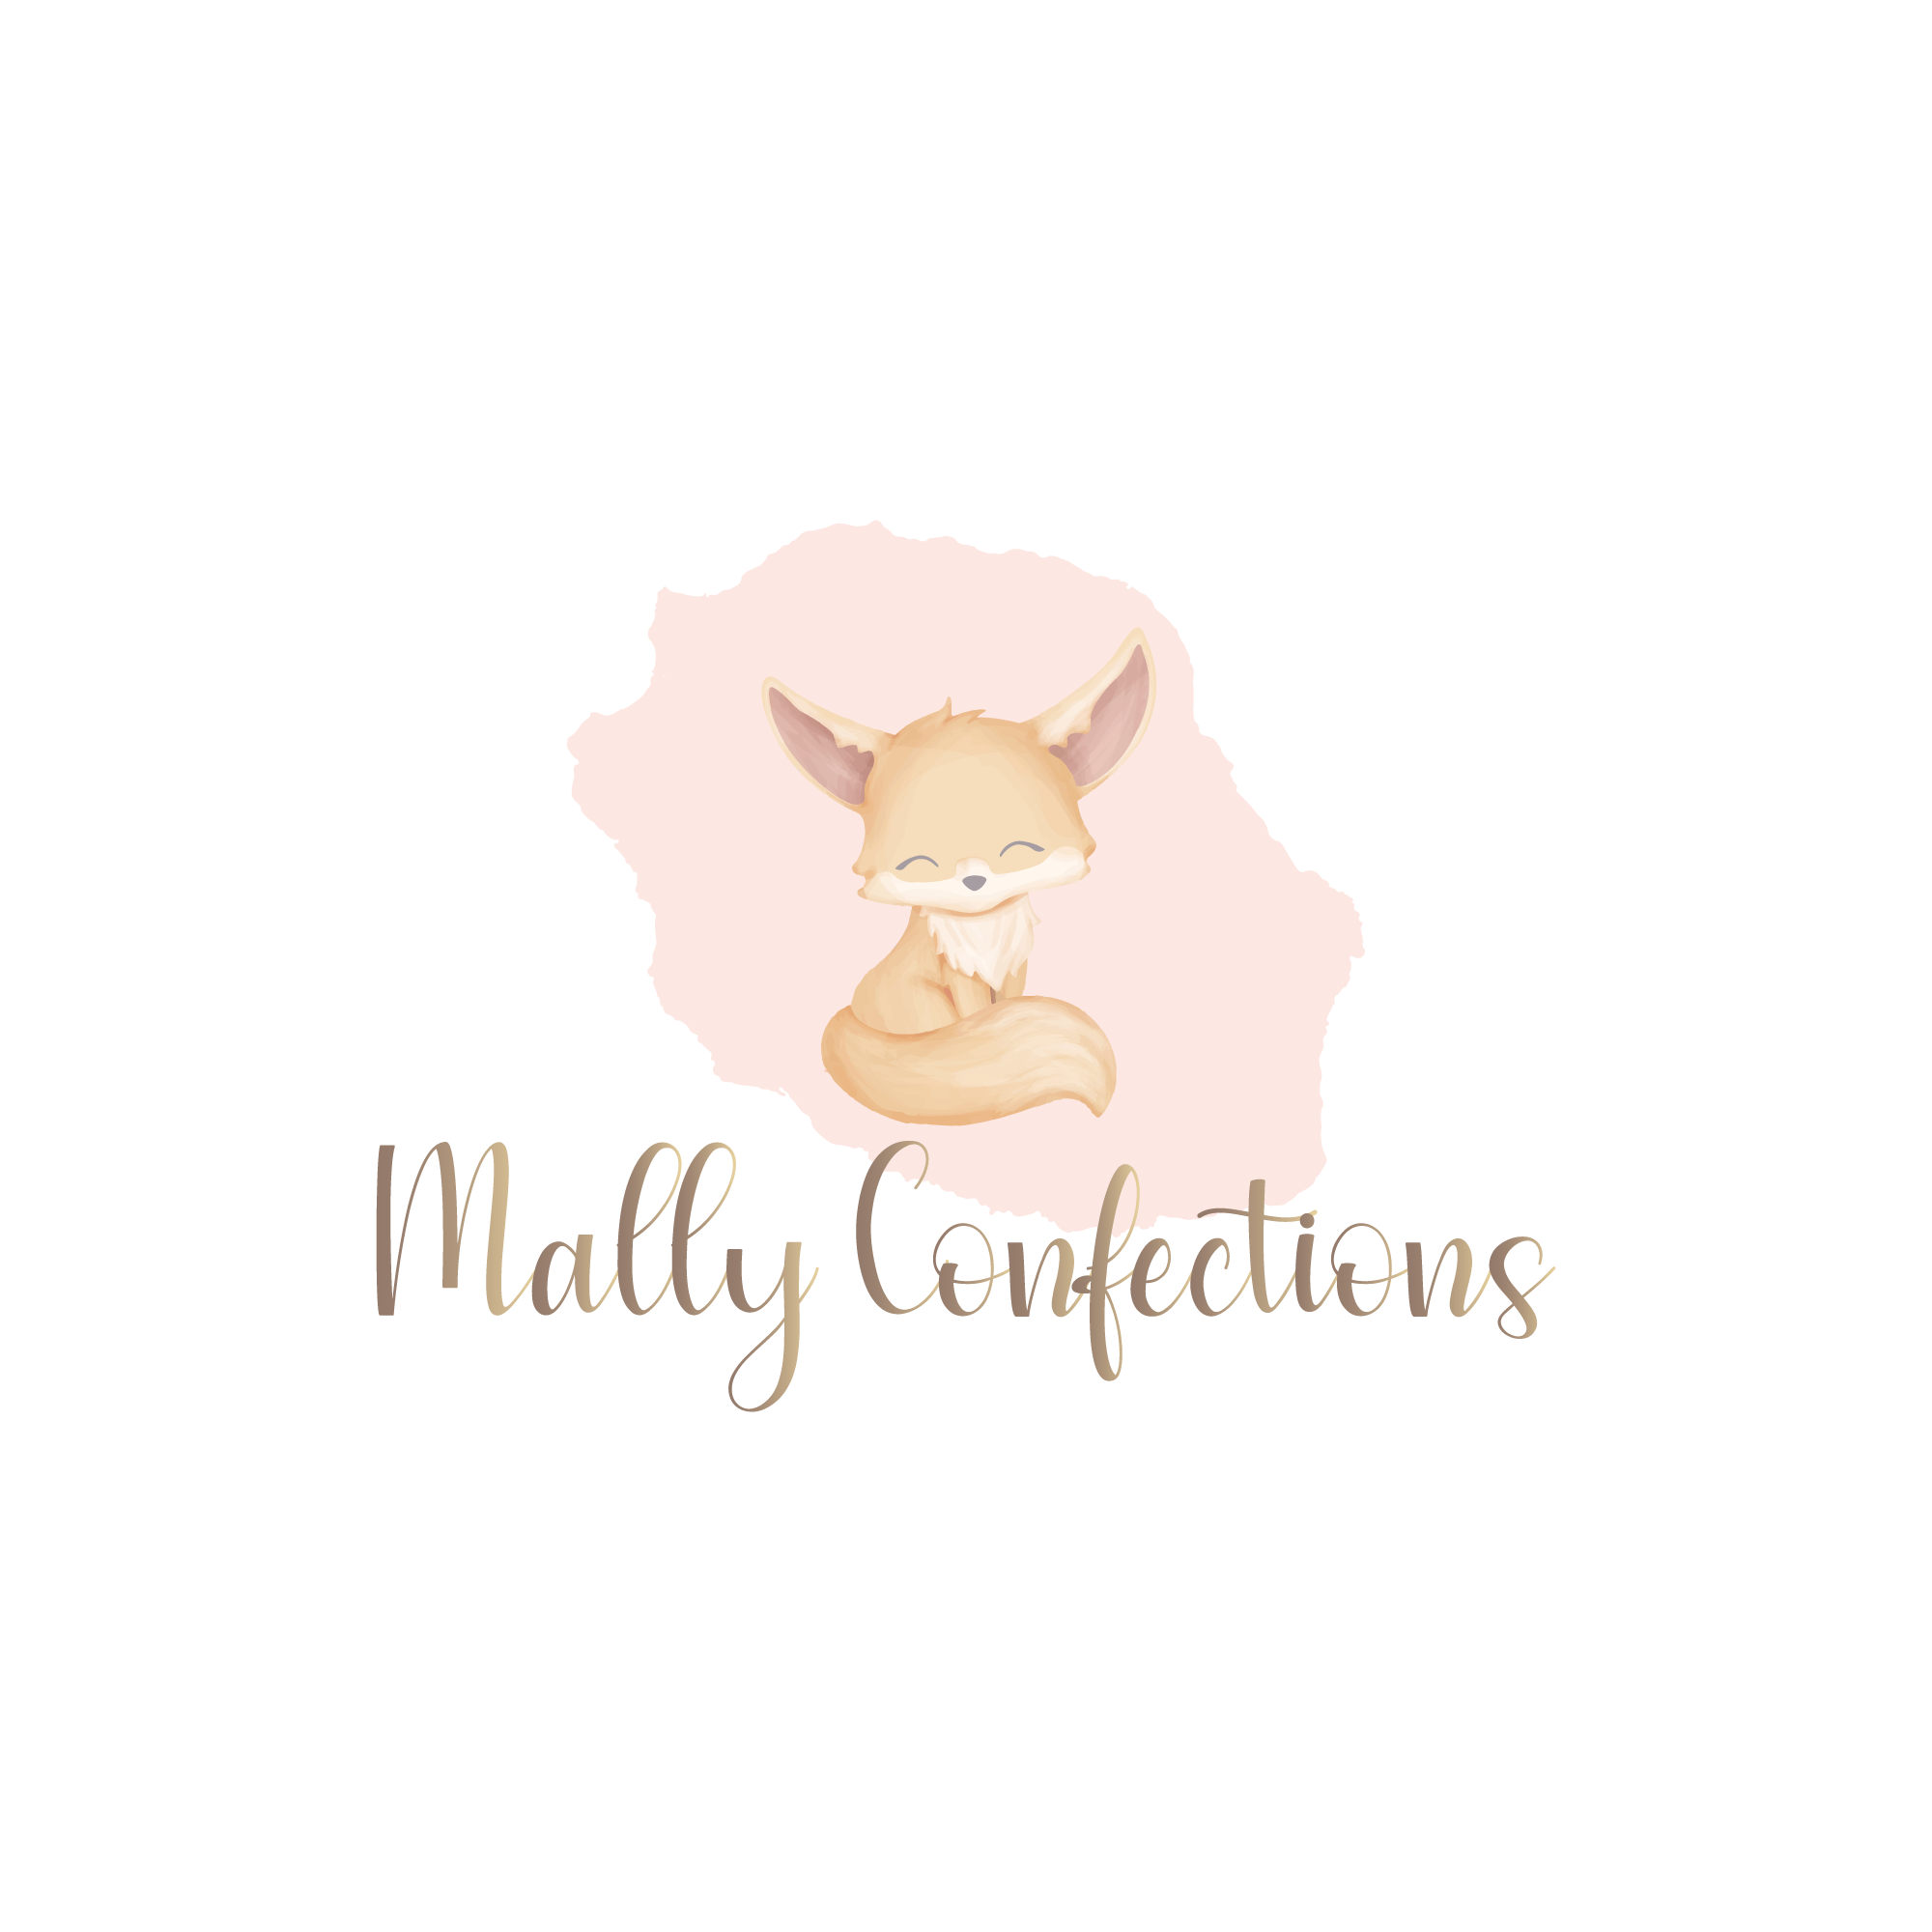 Mally Confections